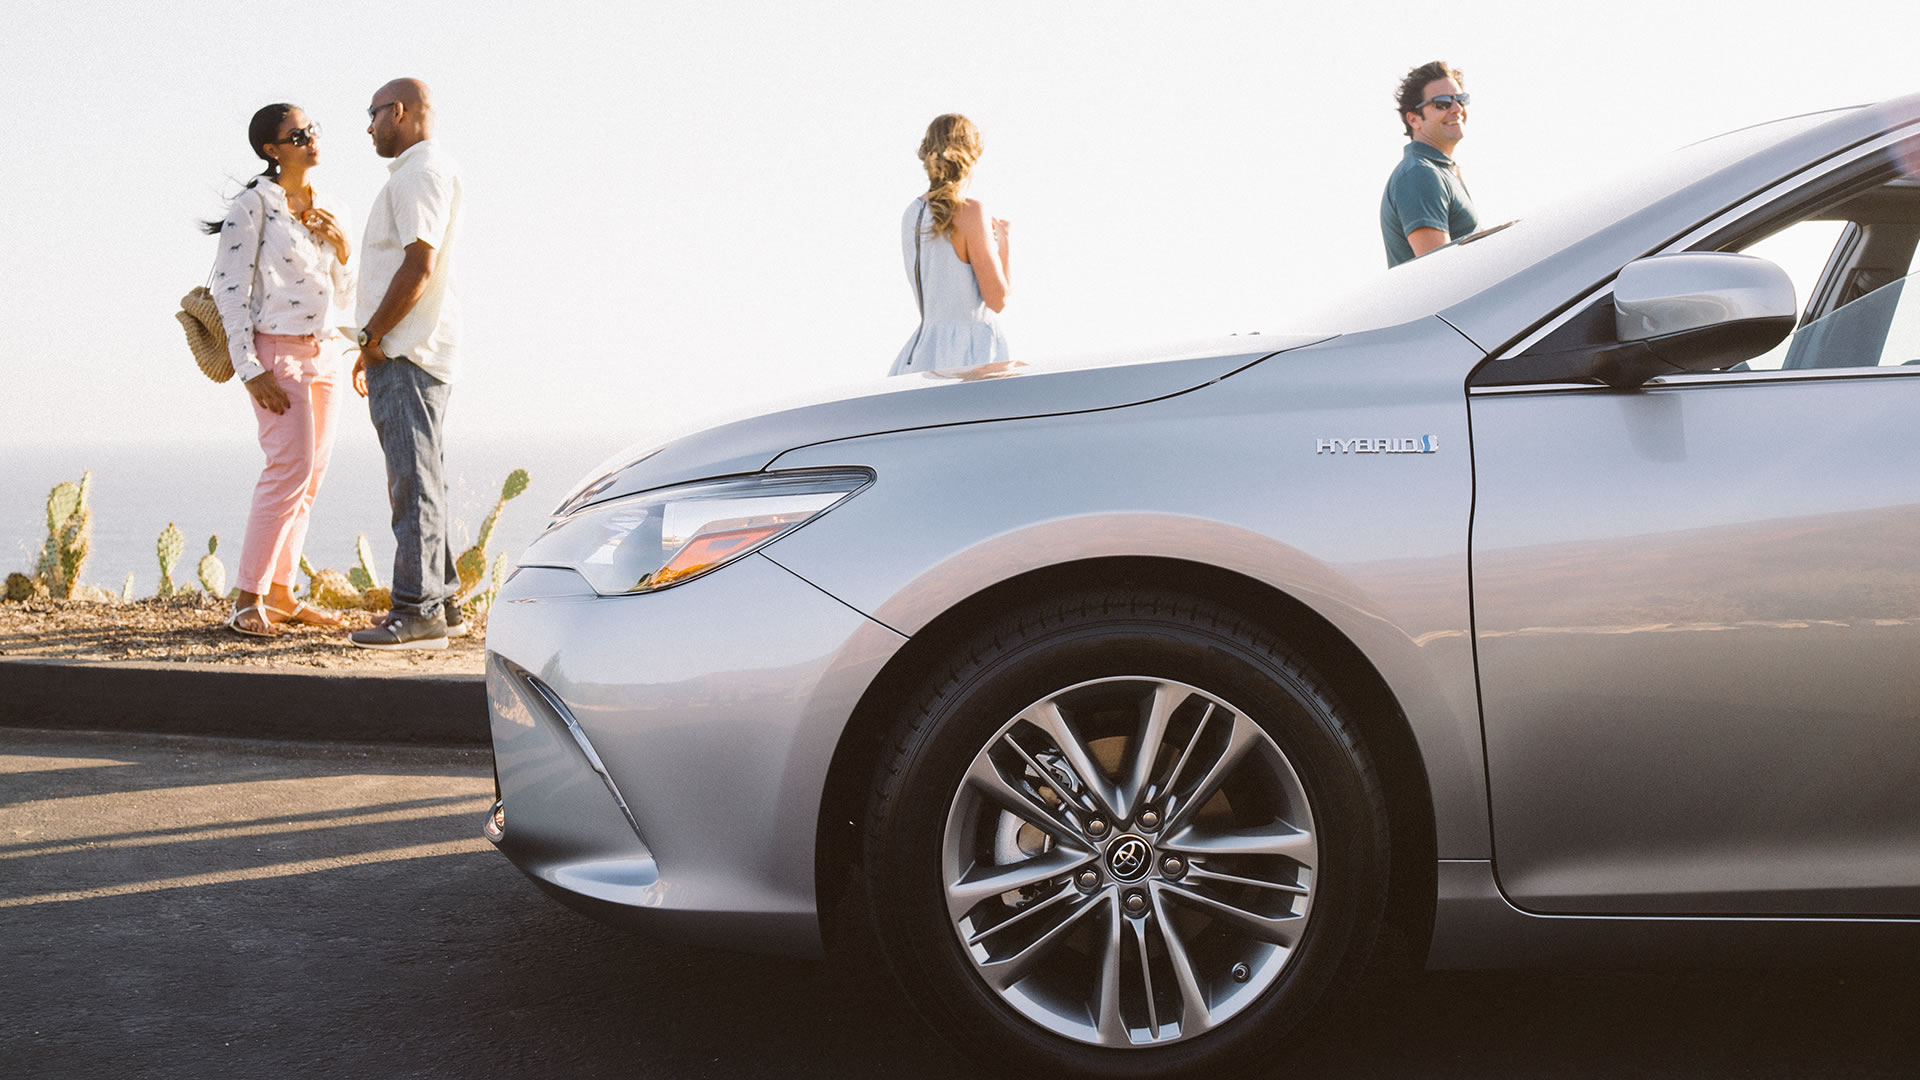 Toyota Camry Lease & Finance Incentives Freehold NJ